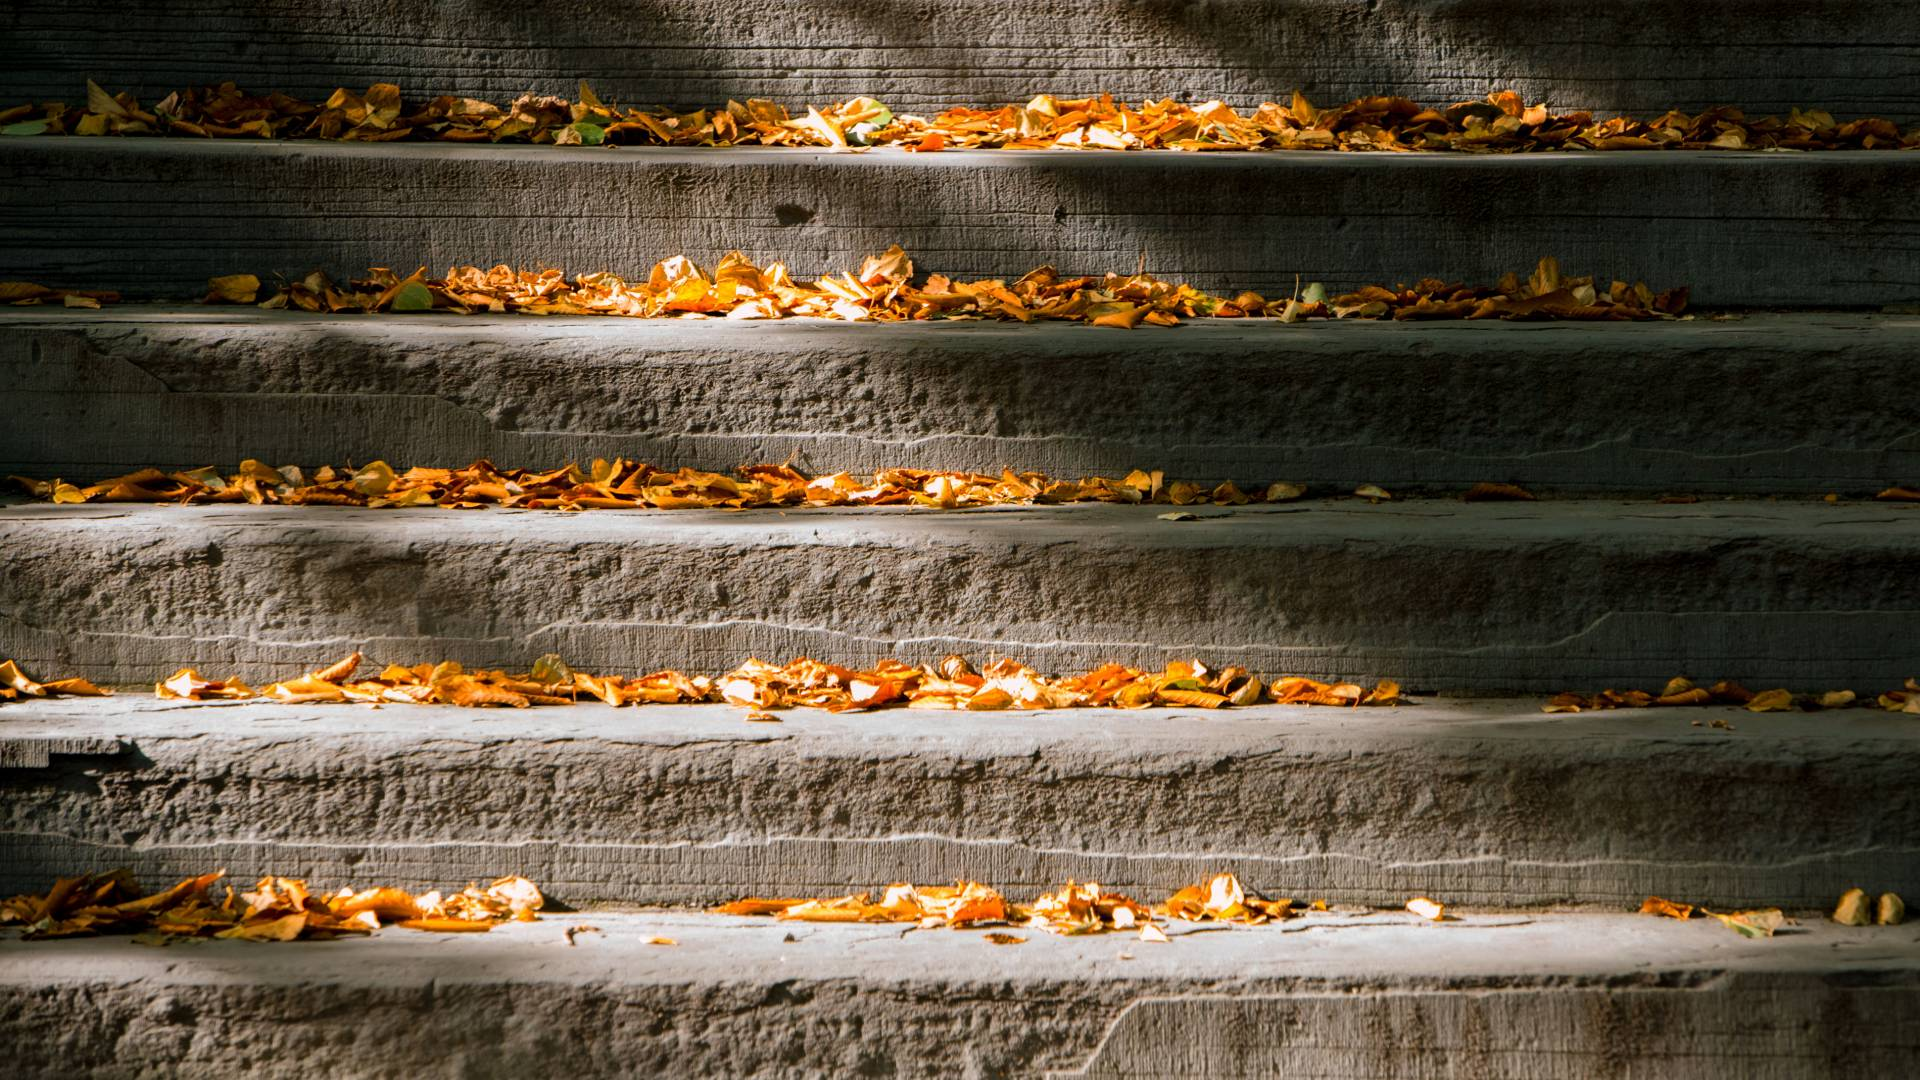 Fall leaves on stone steps